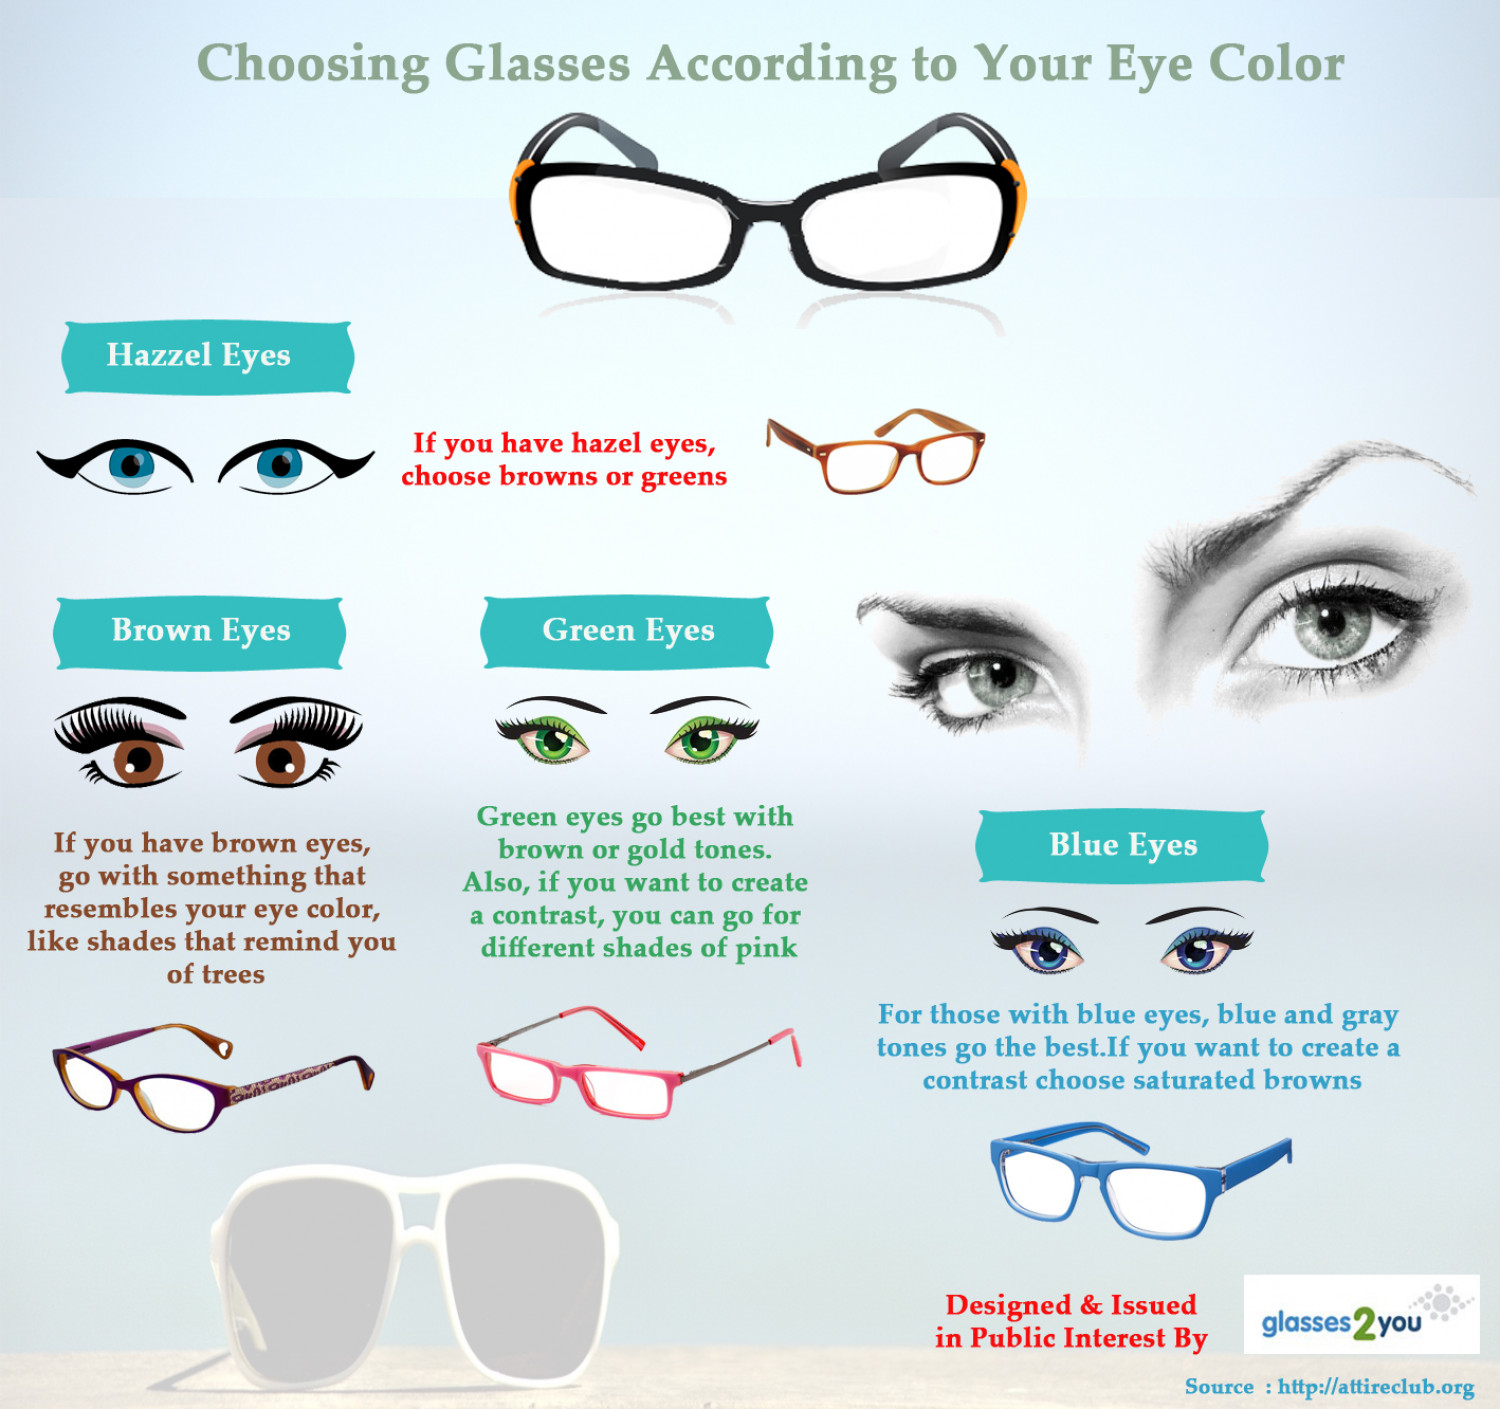 4 Helpful Factors for Choosing the Right Eyeglass Frames